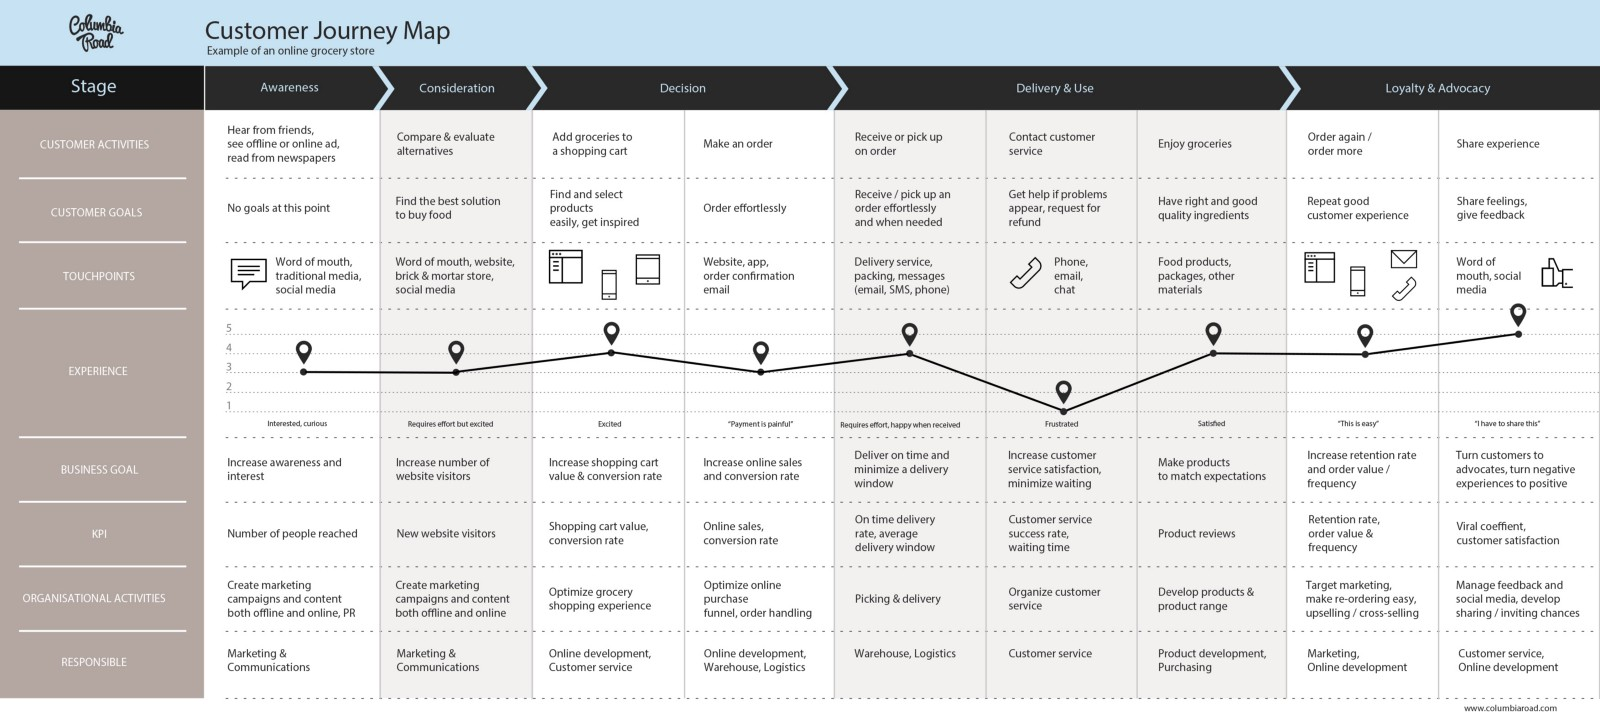 Why And How To Create A Customer Journey Map Download Free Template - Customer journey map template